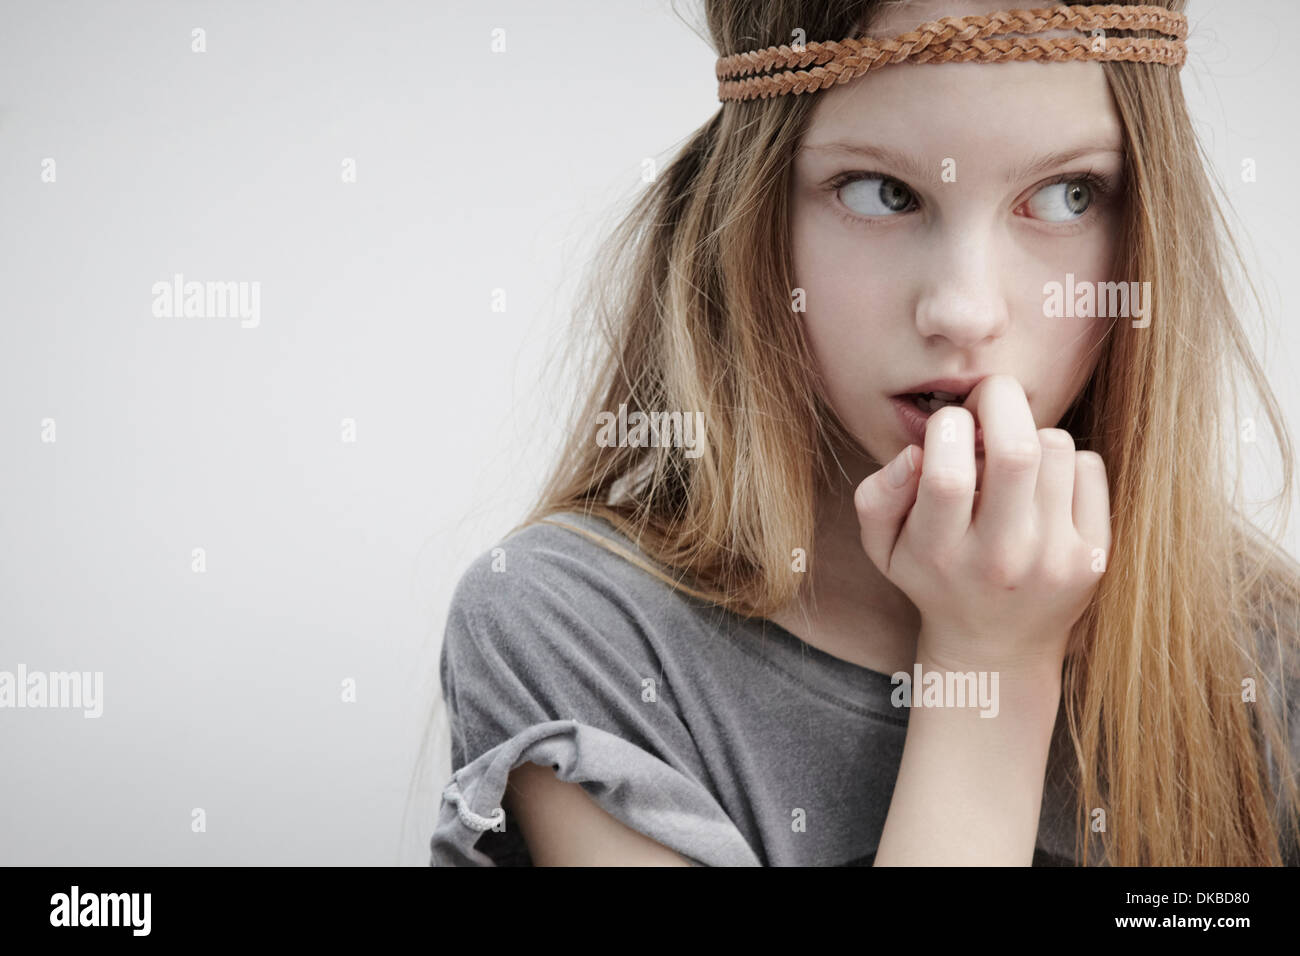 Portrait of Girl wearing tresse cuir autour de tête, holding feather, finger in mouth Photo Stock